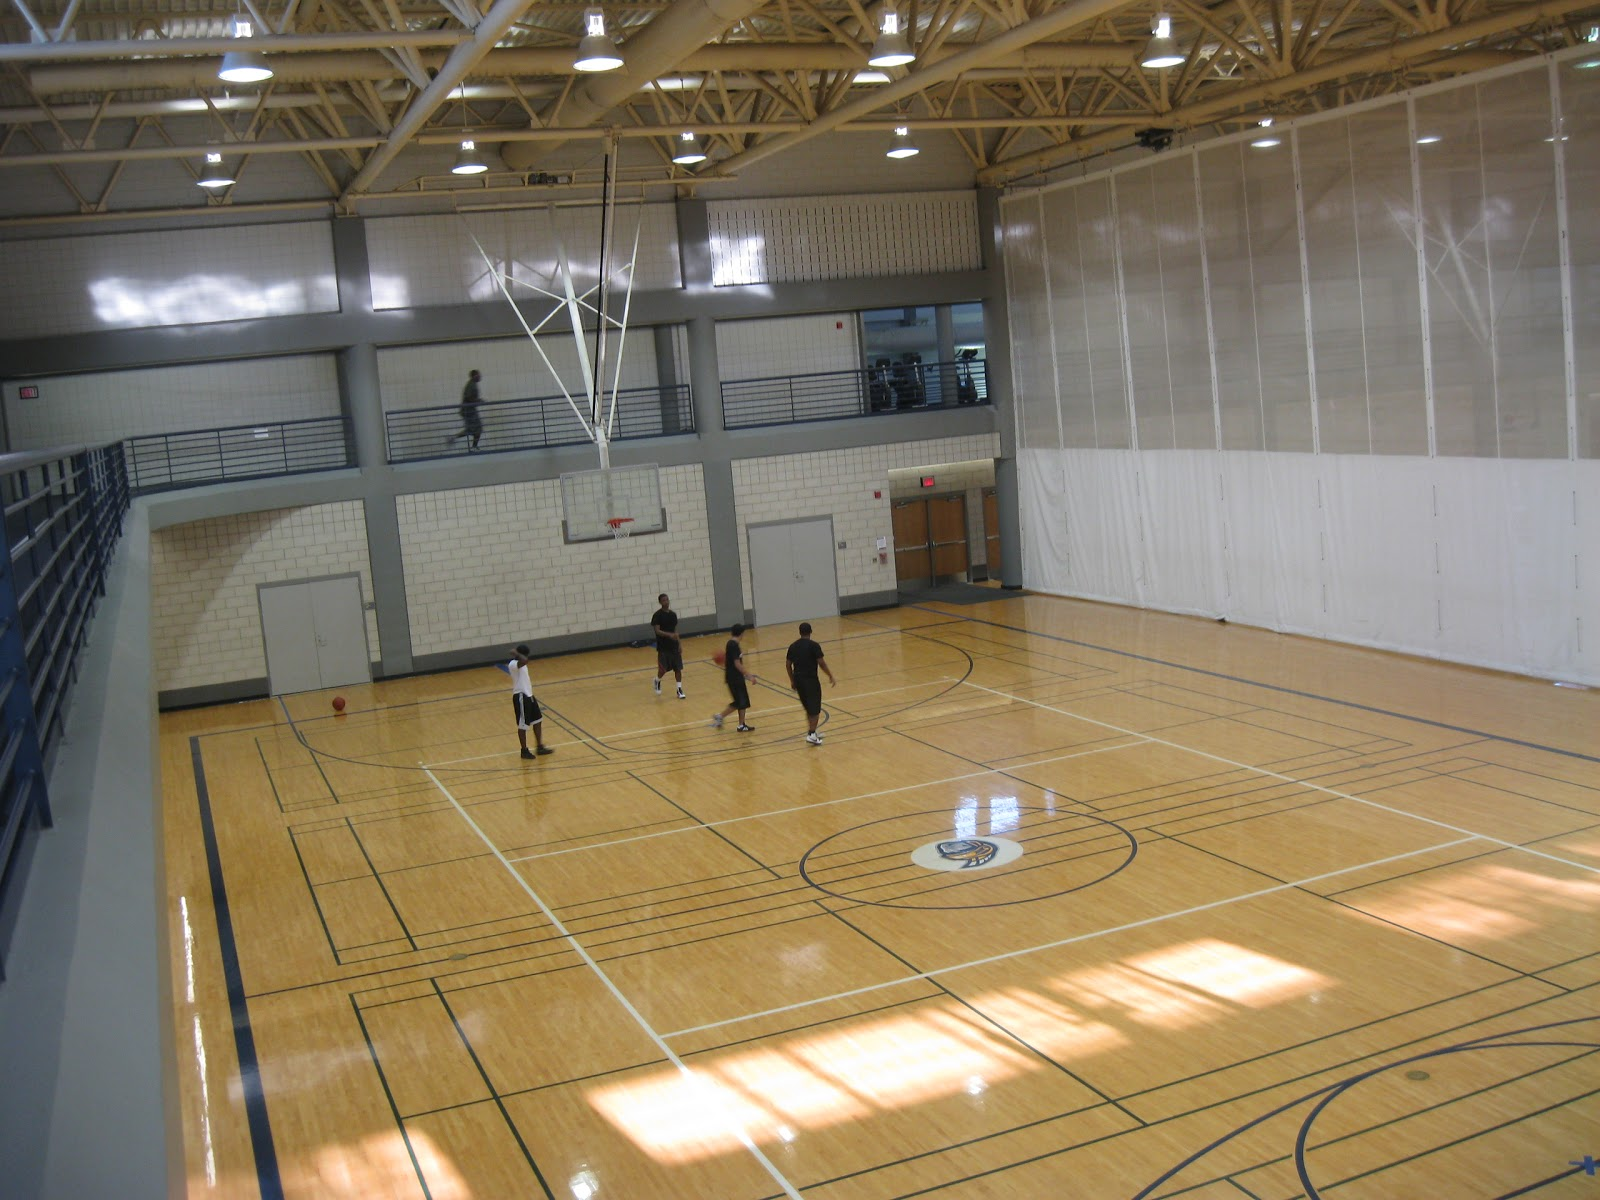 College Basketball Indoor Basketball Court